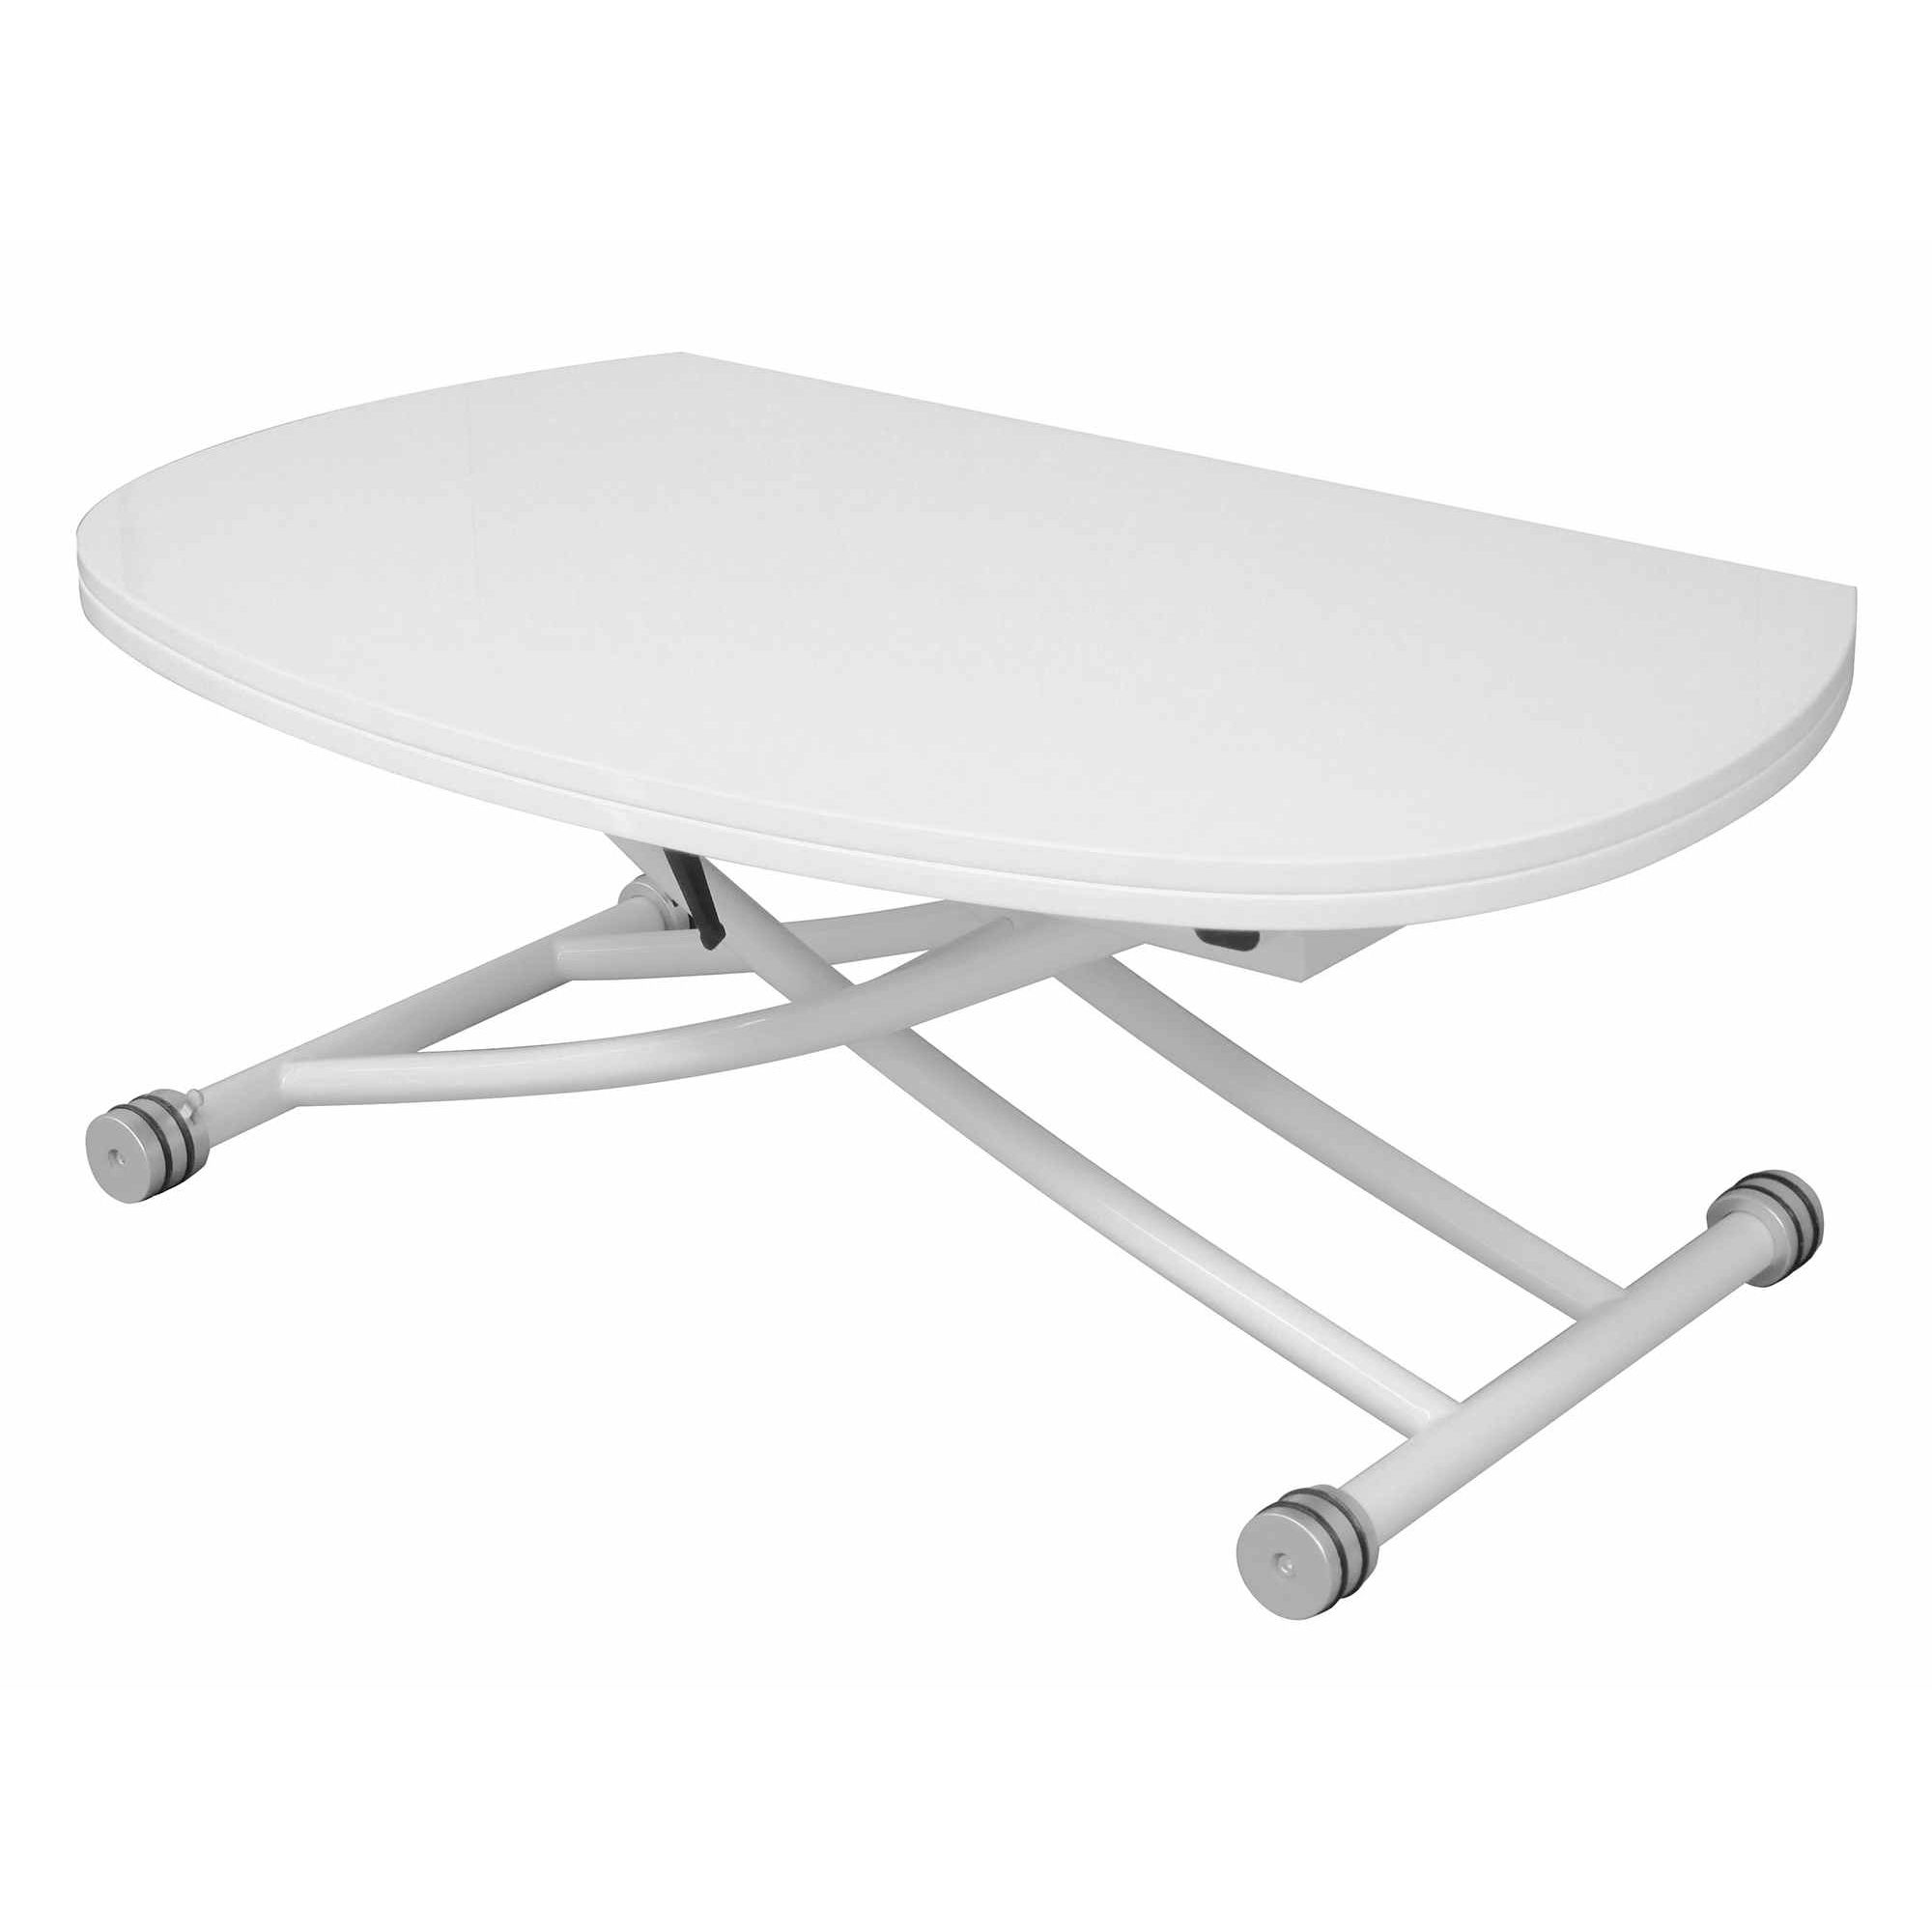 Deco in paris table basse relevable a rallonge laquee blanche caoza tab rel - Table relevable rallonge ...